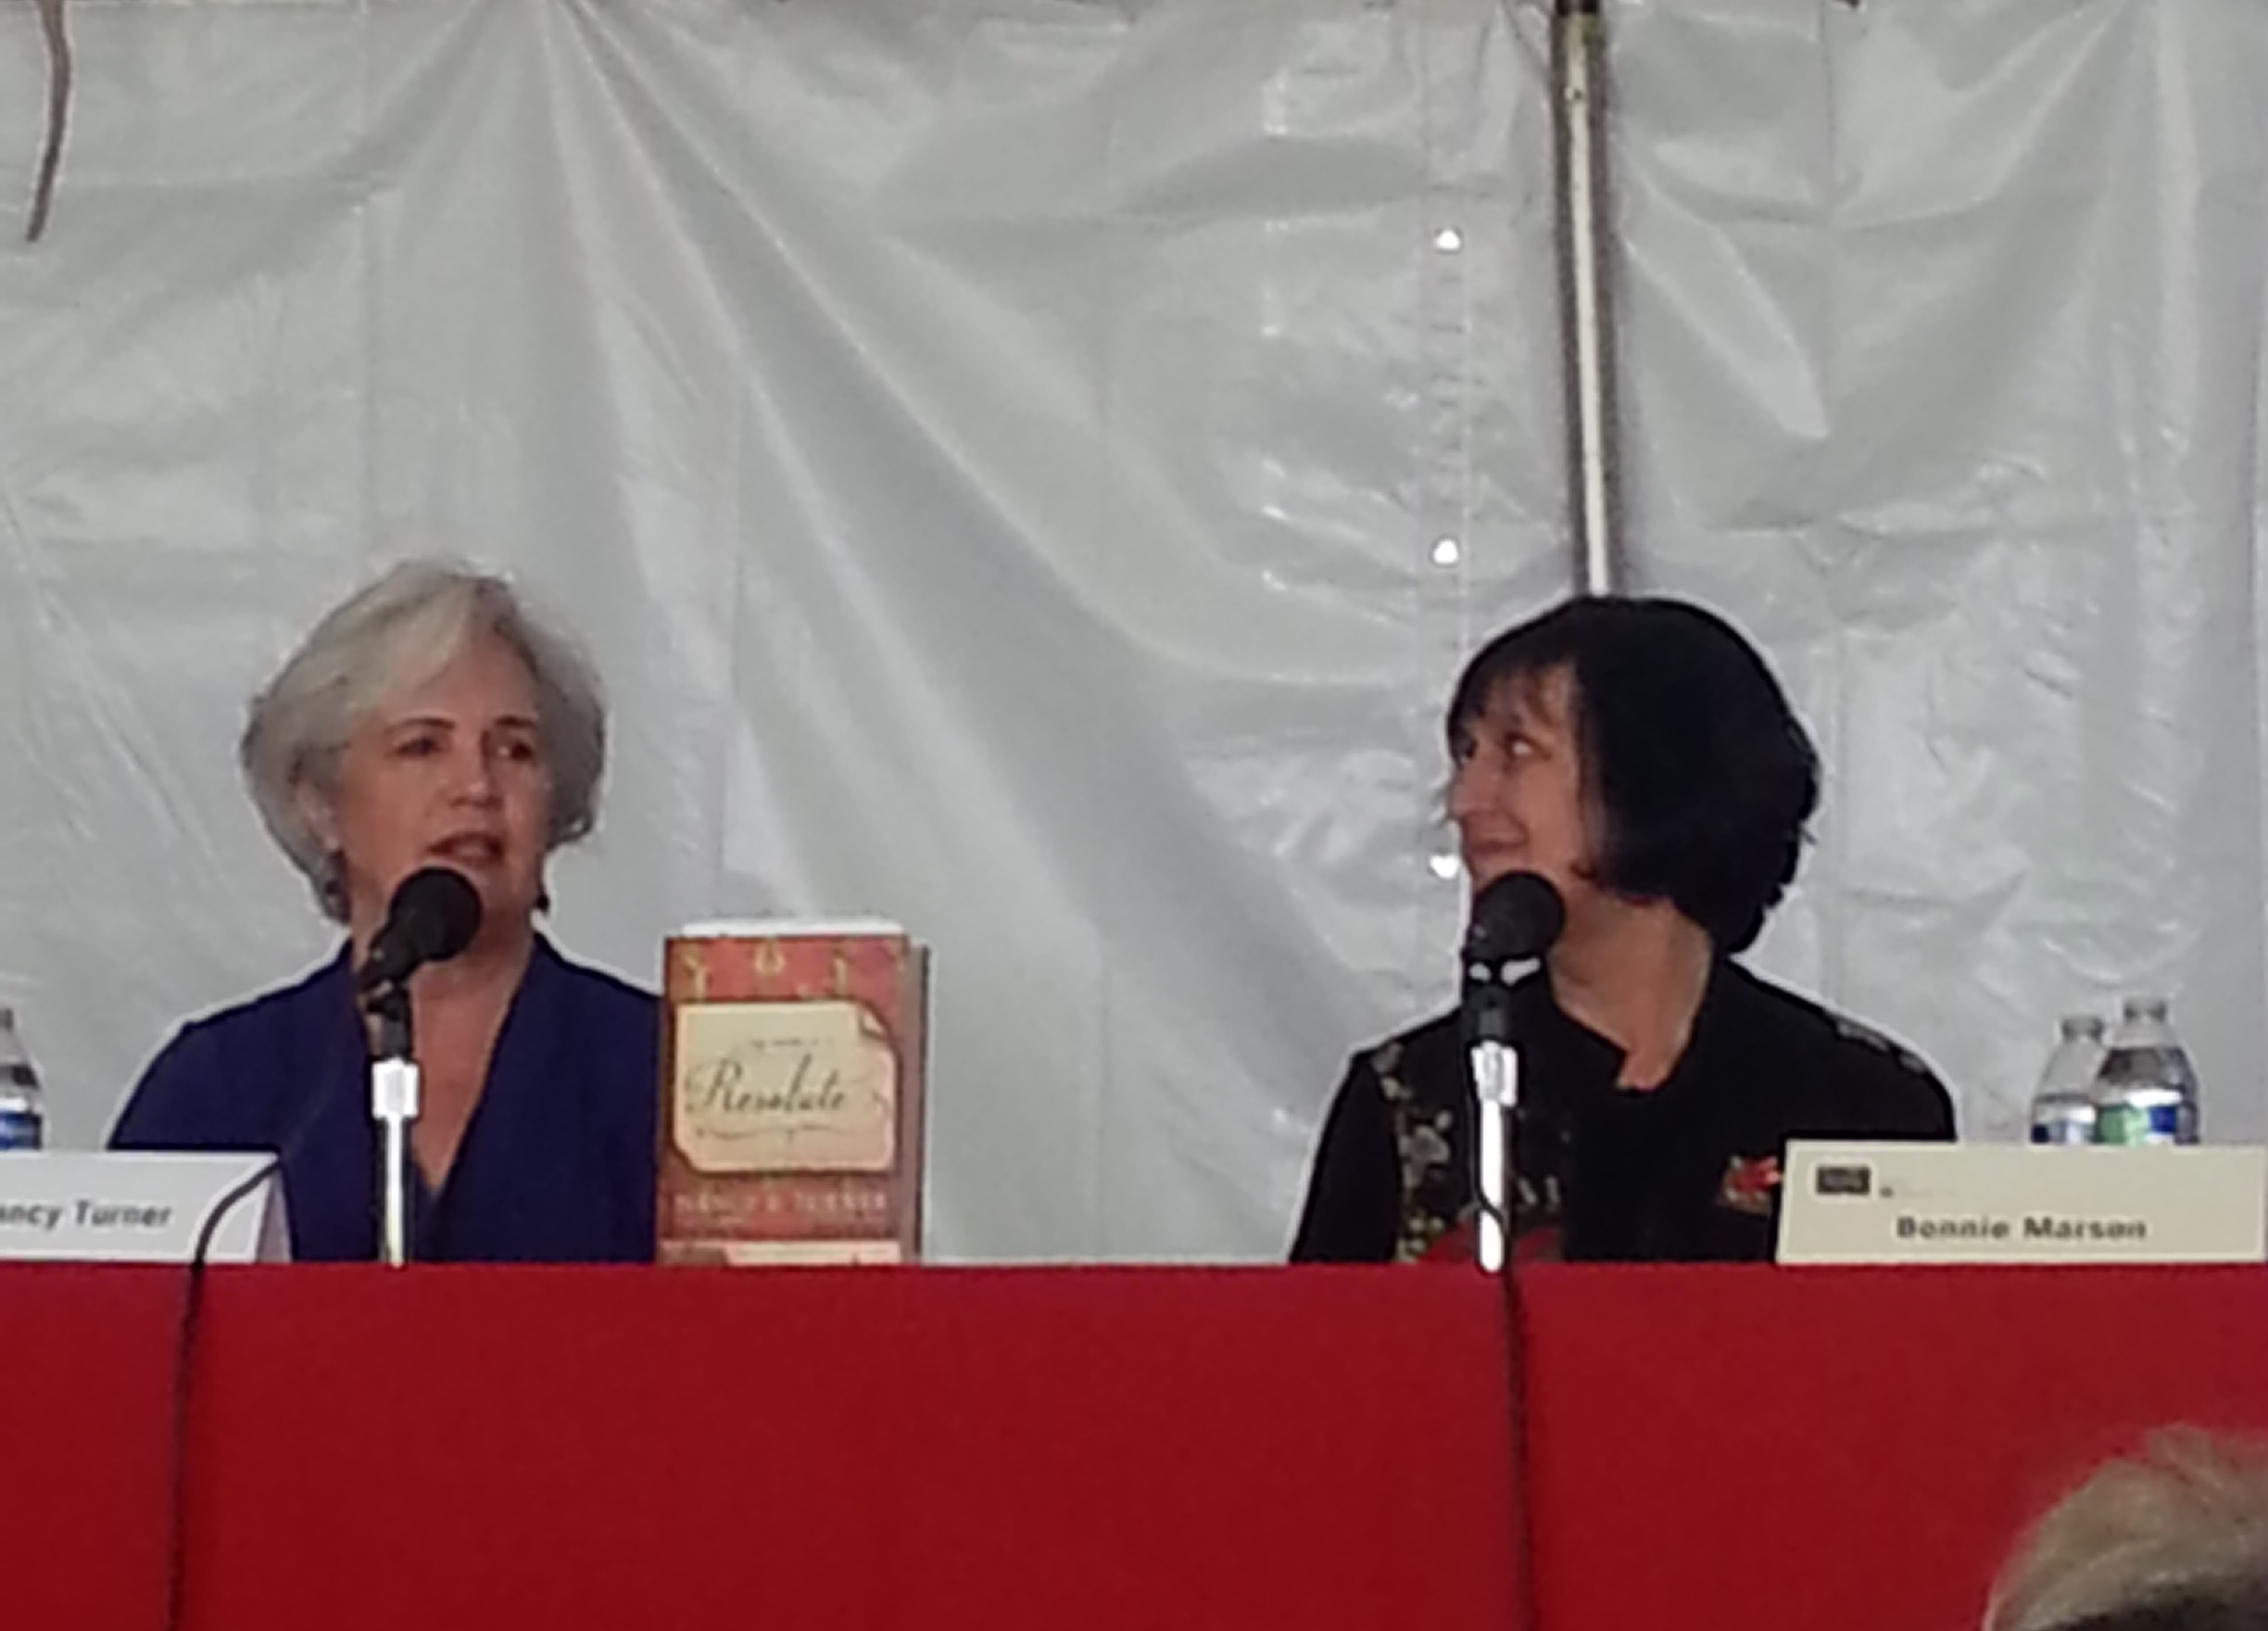 Nancy Turner speaking at the Tucson Festival of Books